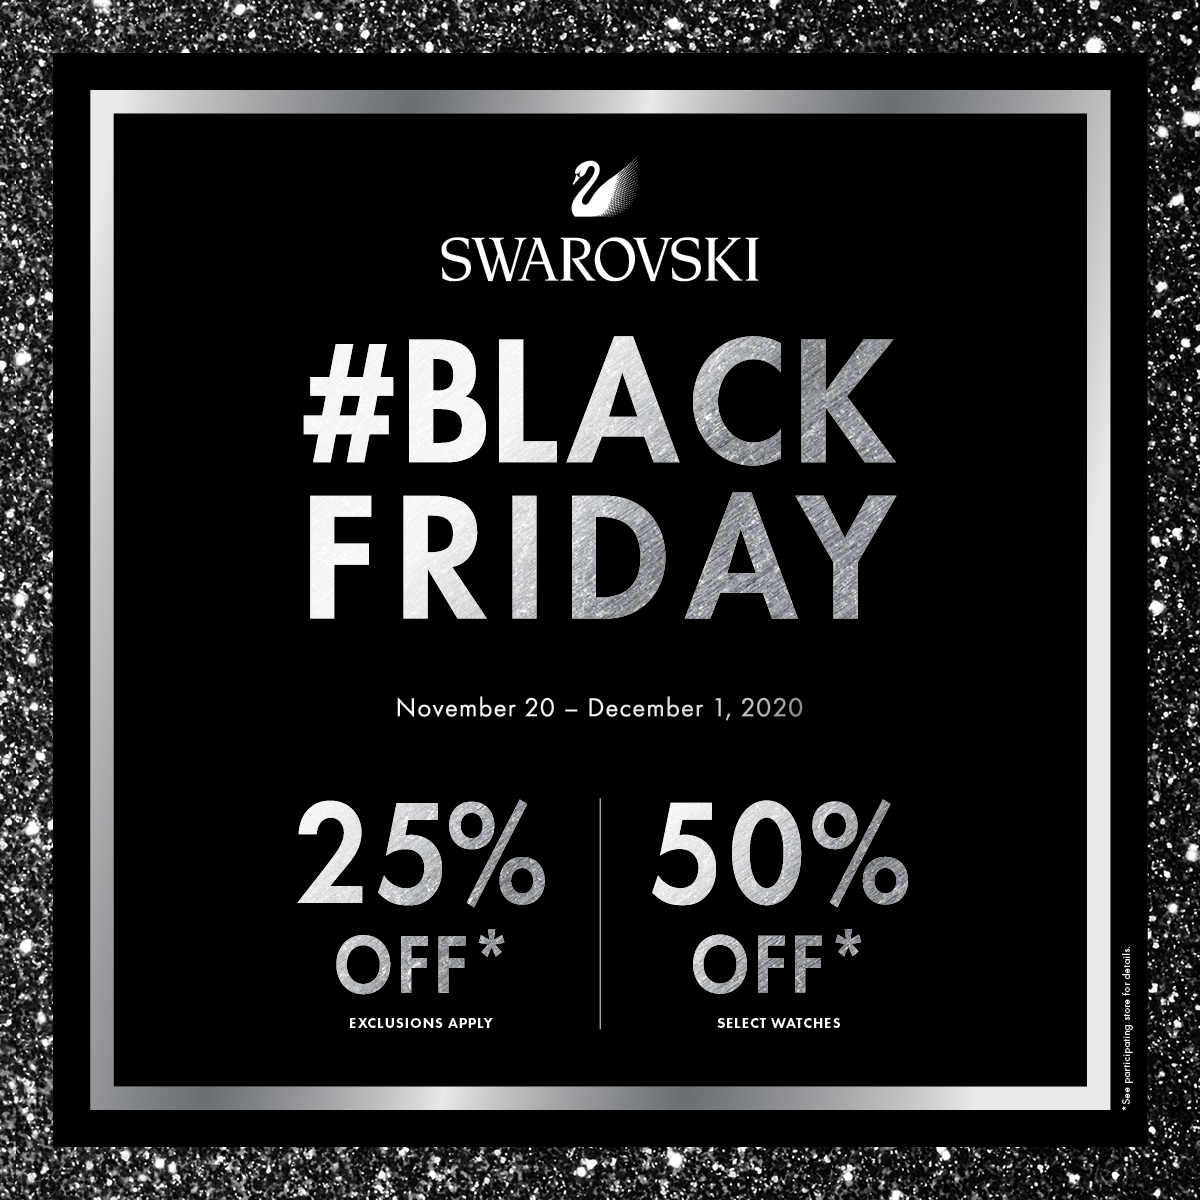 Swarovski Black Friday Sale from Swarovski